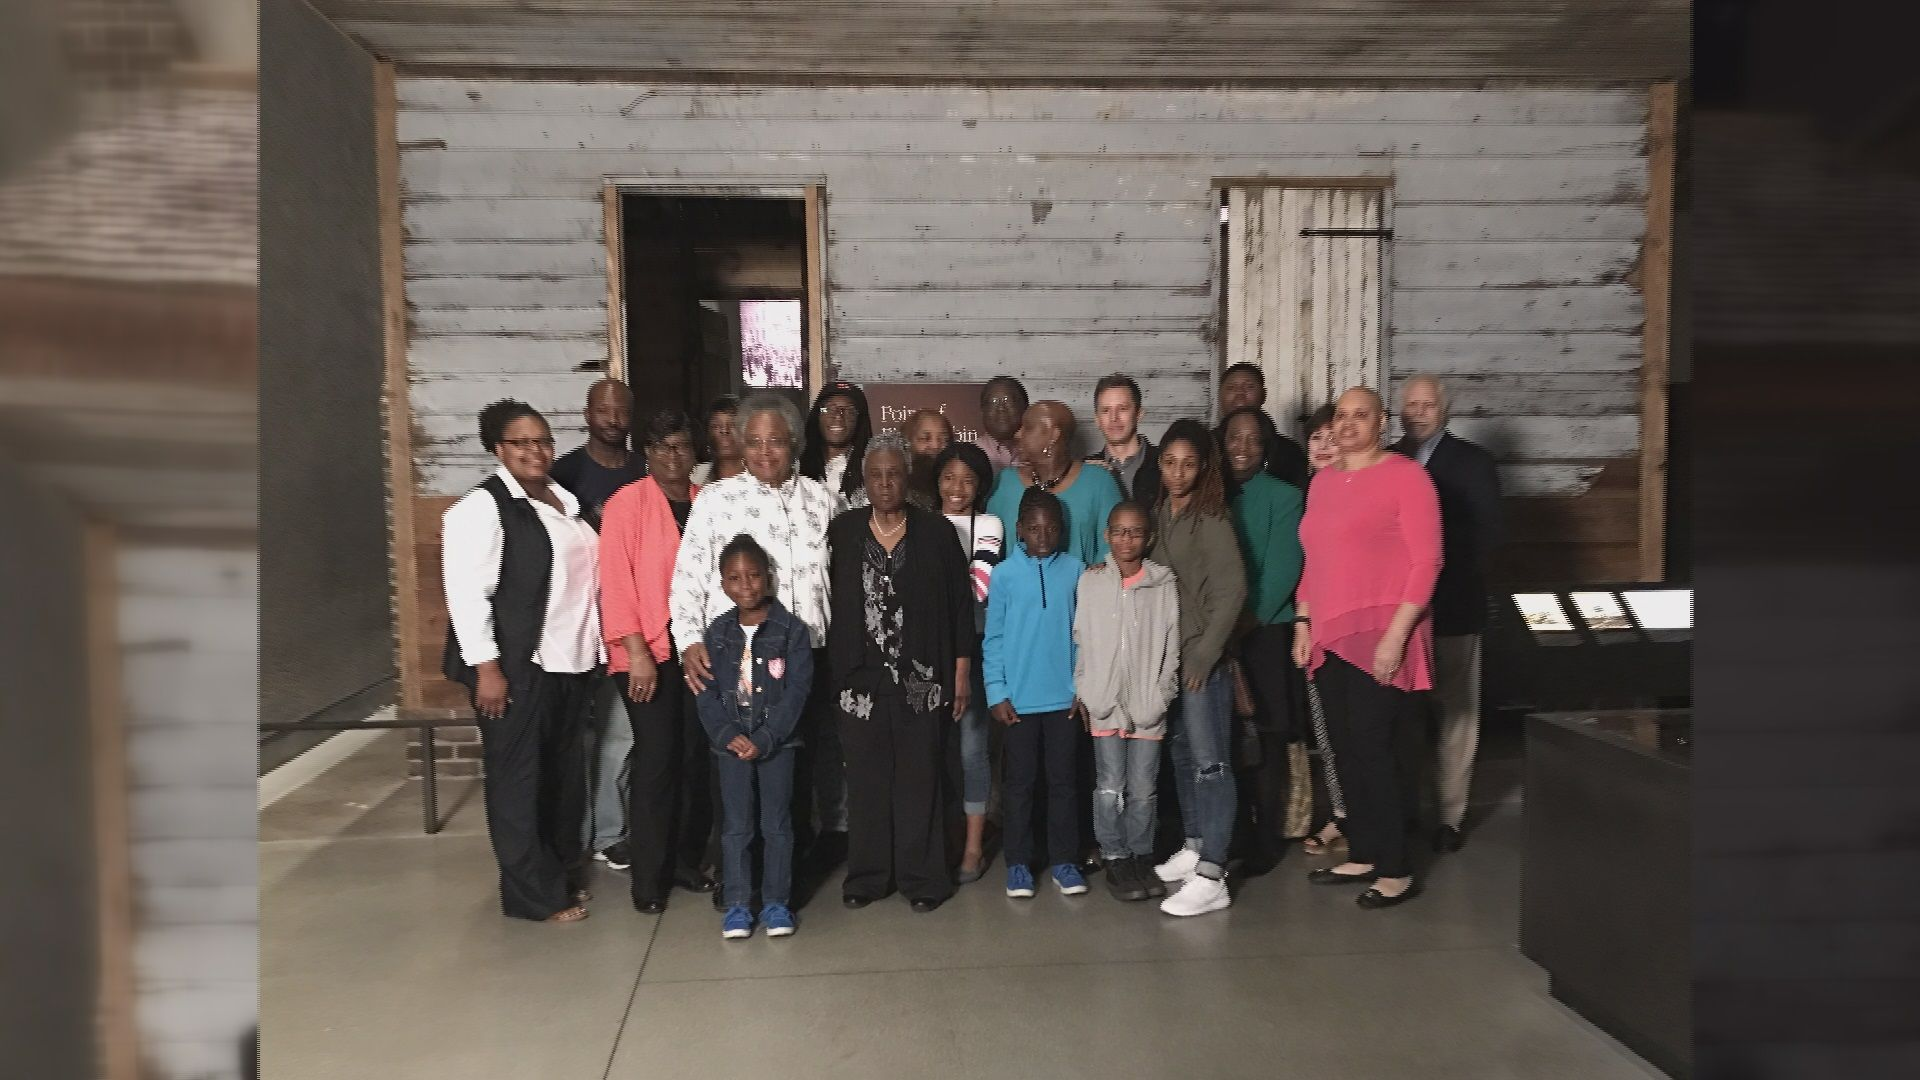 It's considered one of the oldest and best preserved slave cabins of the country. It's not only a piece of history but a story of community and that's what caught the Museum's attention.